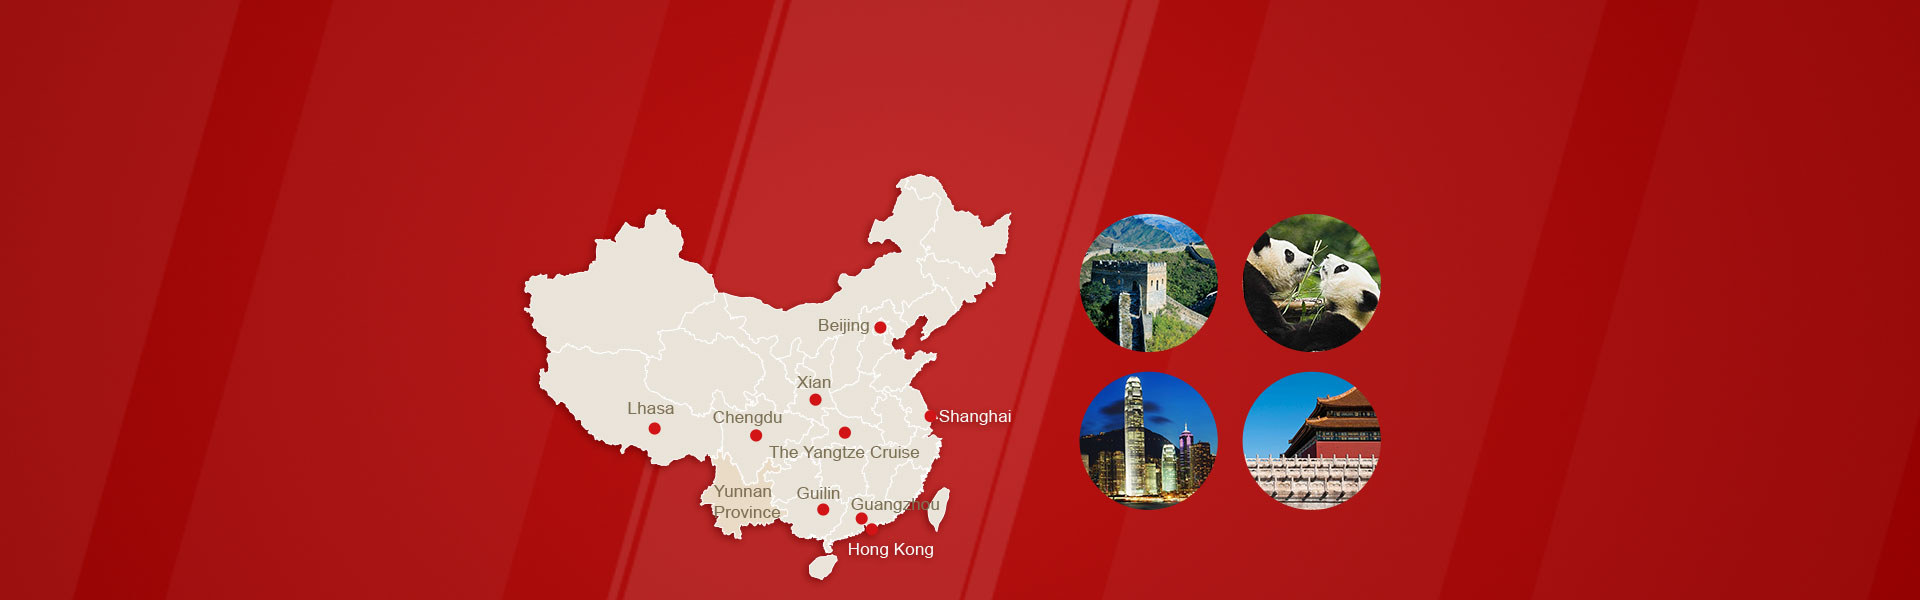 2015 Top 10 Destinations to Travel in China